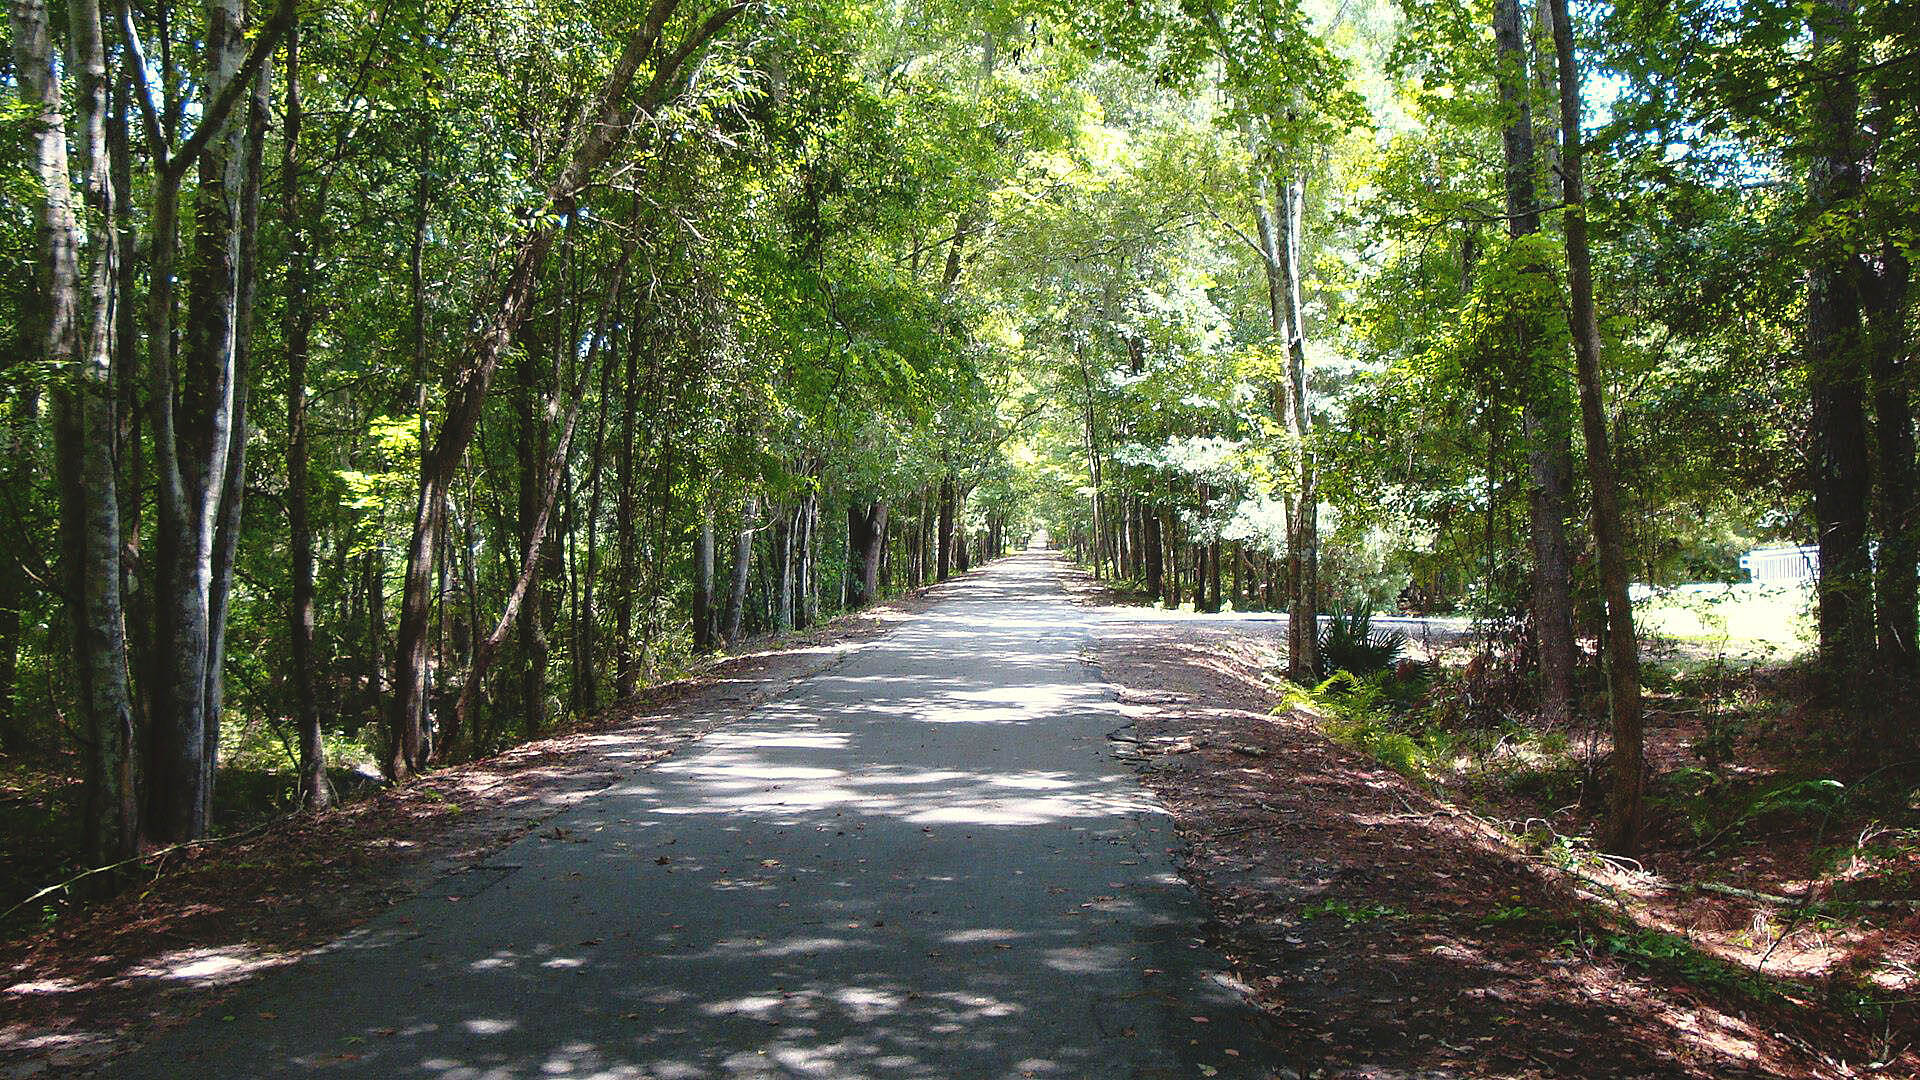 Jacksonville-Baldwin Rail-Trail Jacksonville-Baldwin Rail-Trai Photo submitted by: opbiker